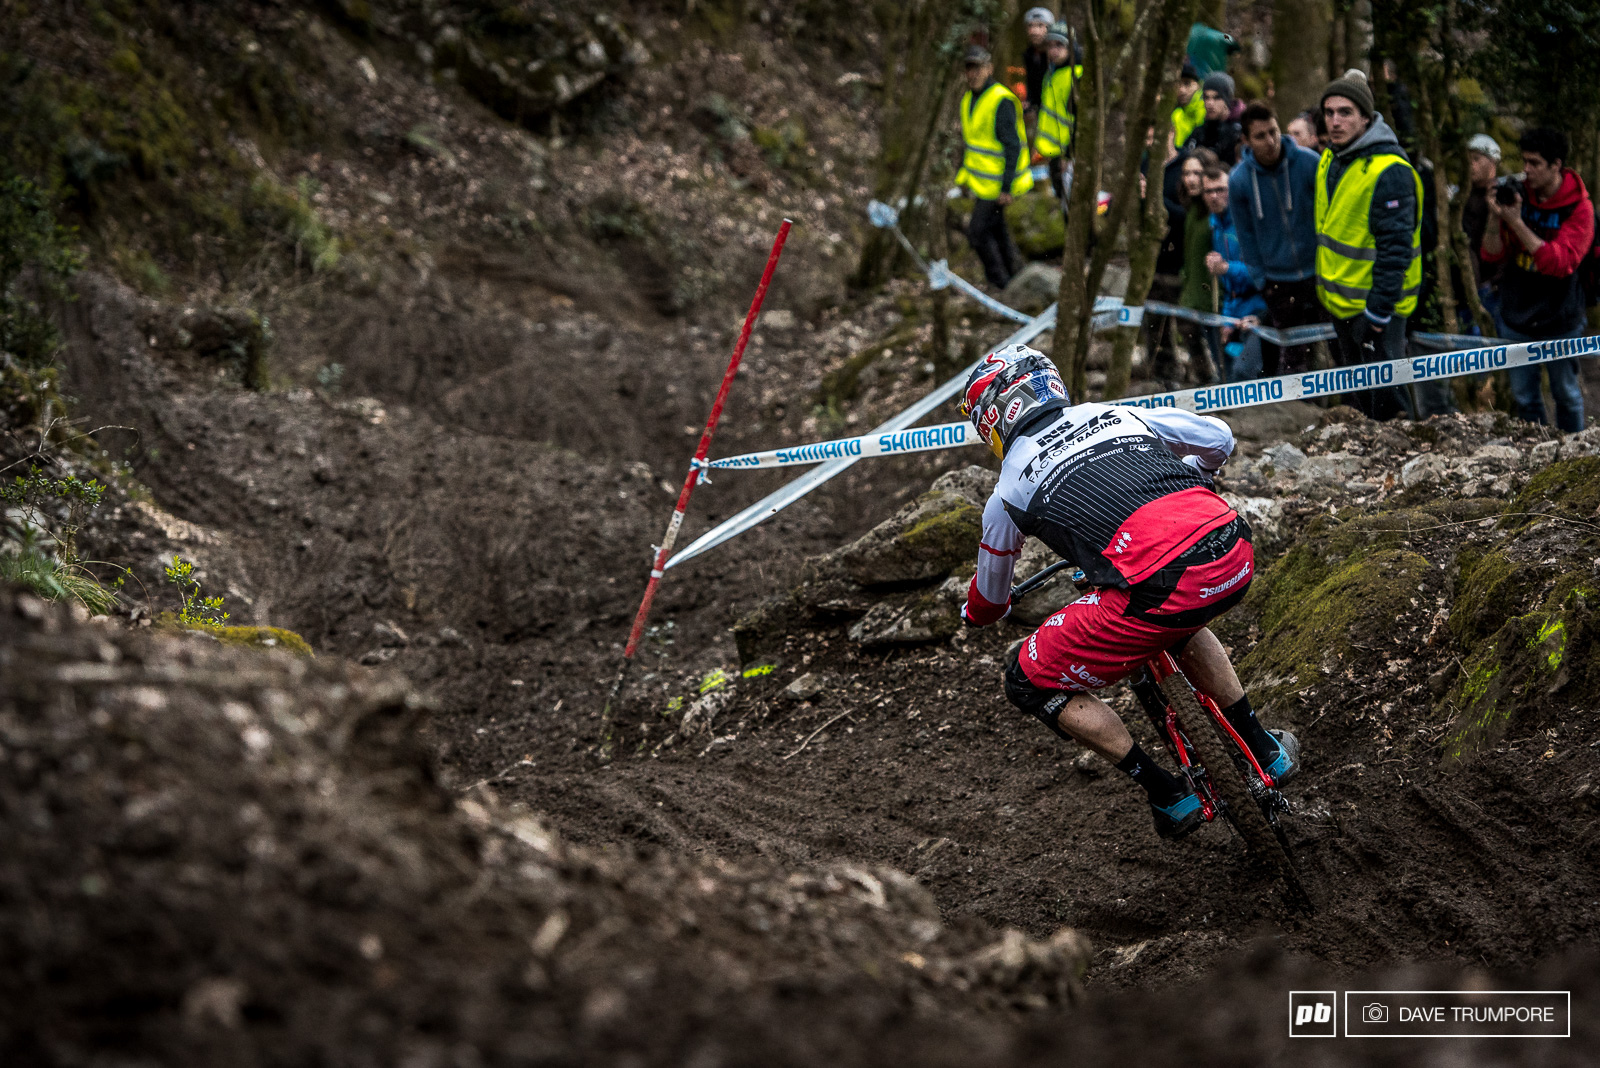 Gee Atherton muscled his way down to 7th and while that s not the result he hoped for it gives him very solid points going into what will no doubt be a long and hotly contested season.